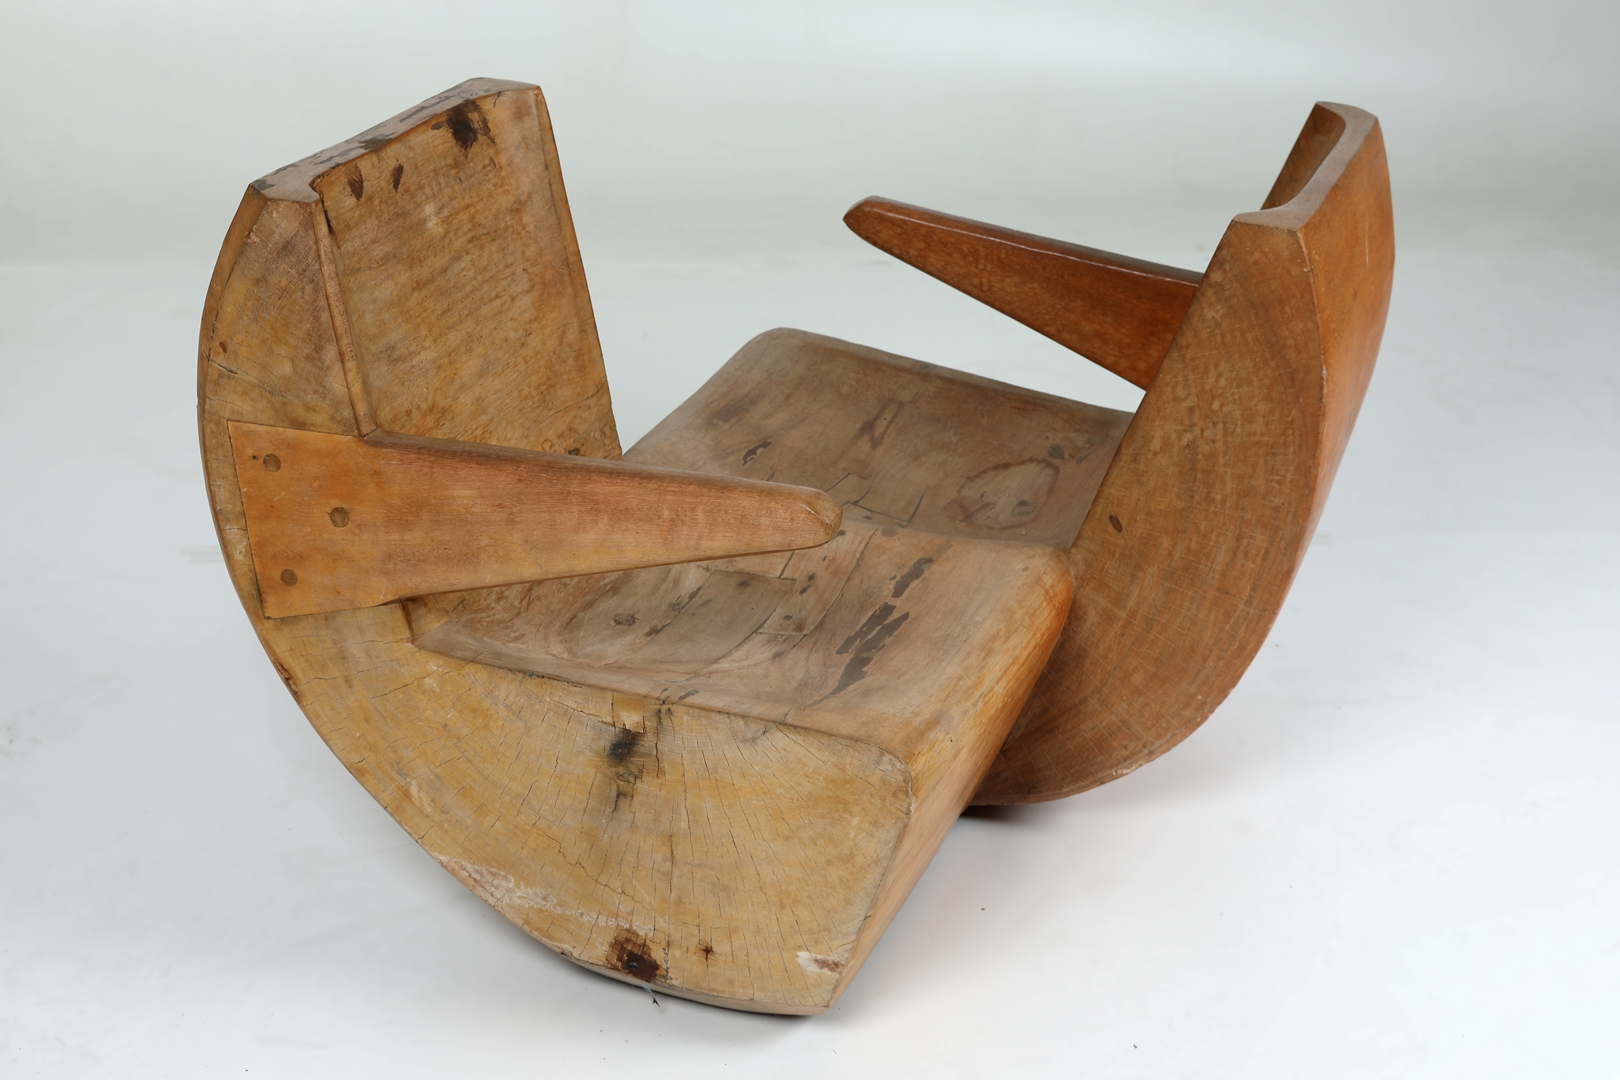 'Namoradeira' rocking chair by Jose Zanine Caldas 1970 at Mercado Moderno courtesy of Mercado Moderno (Copy)